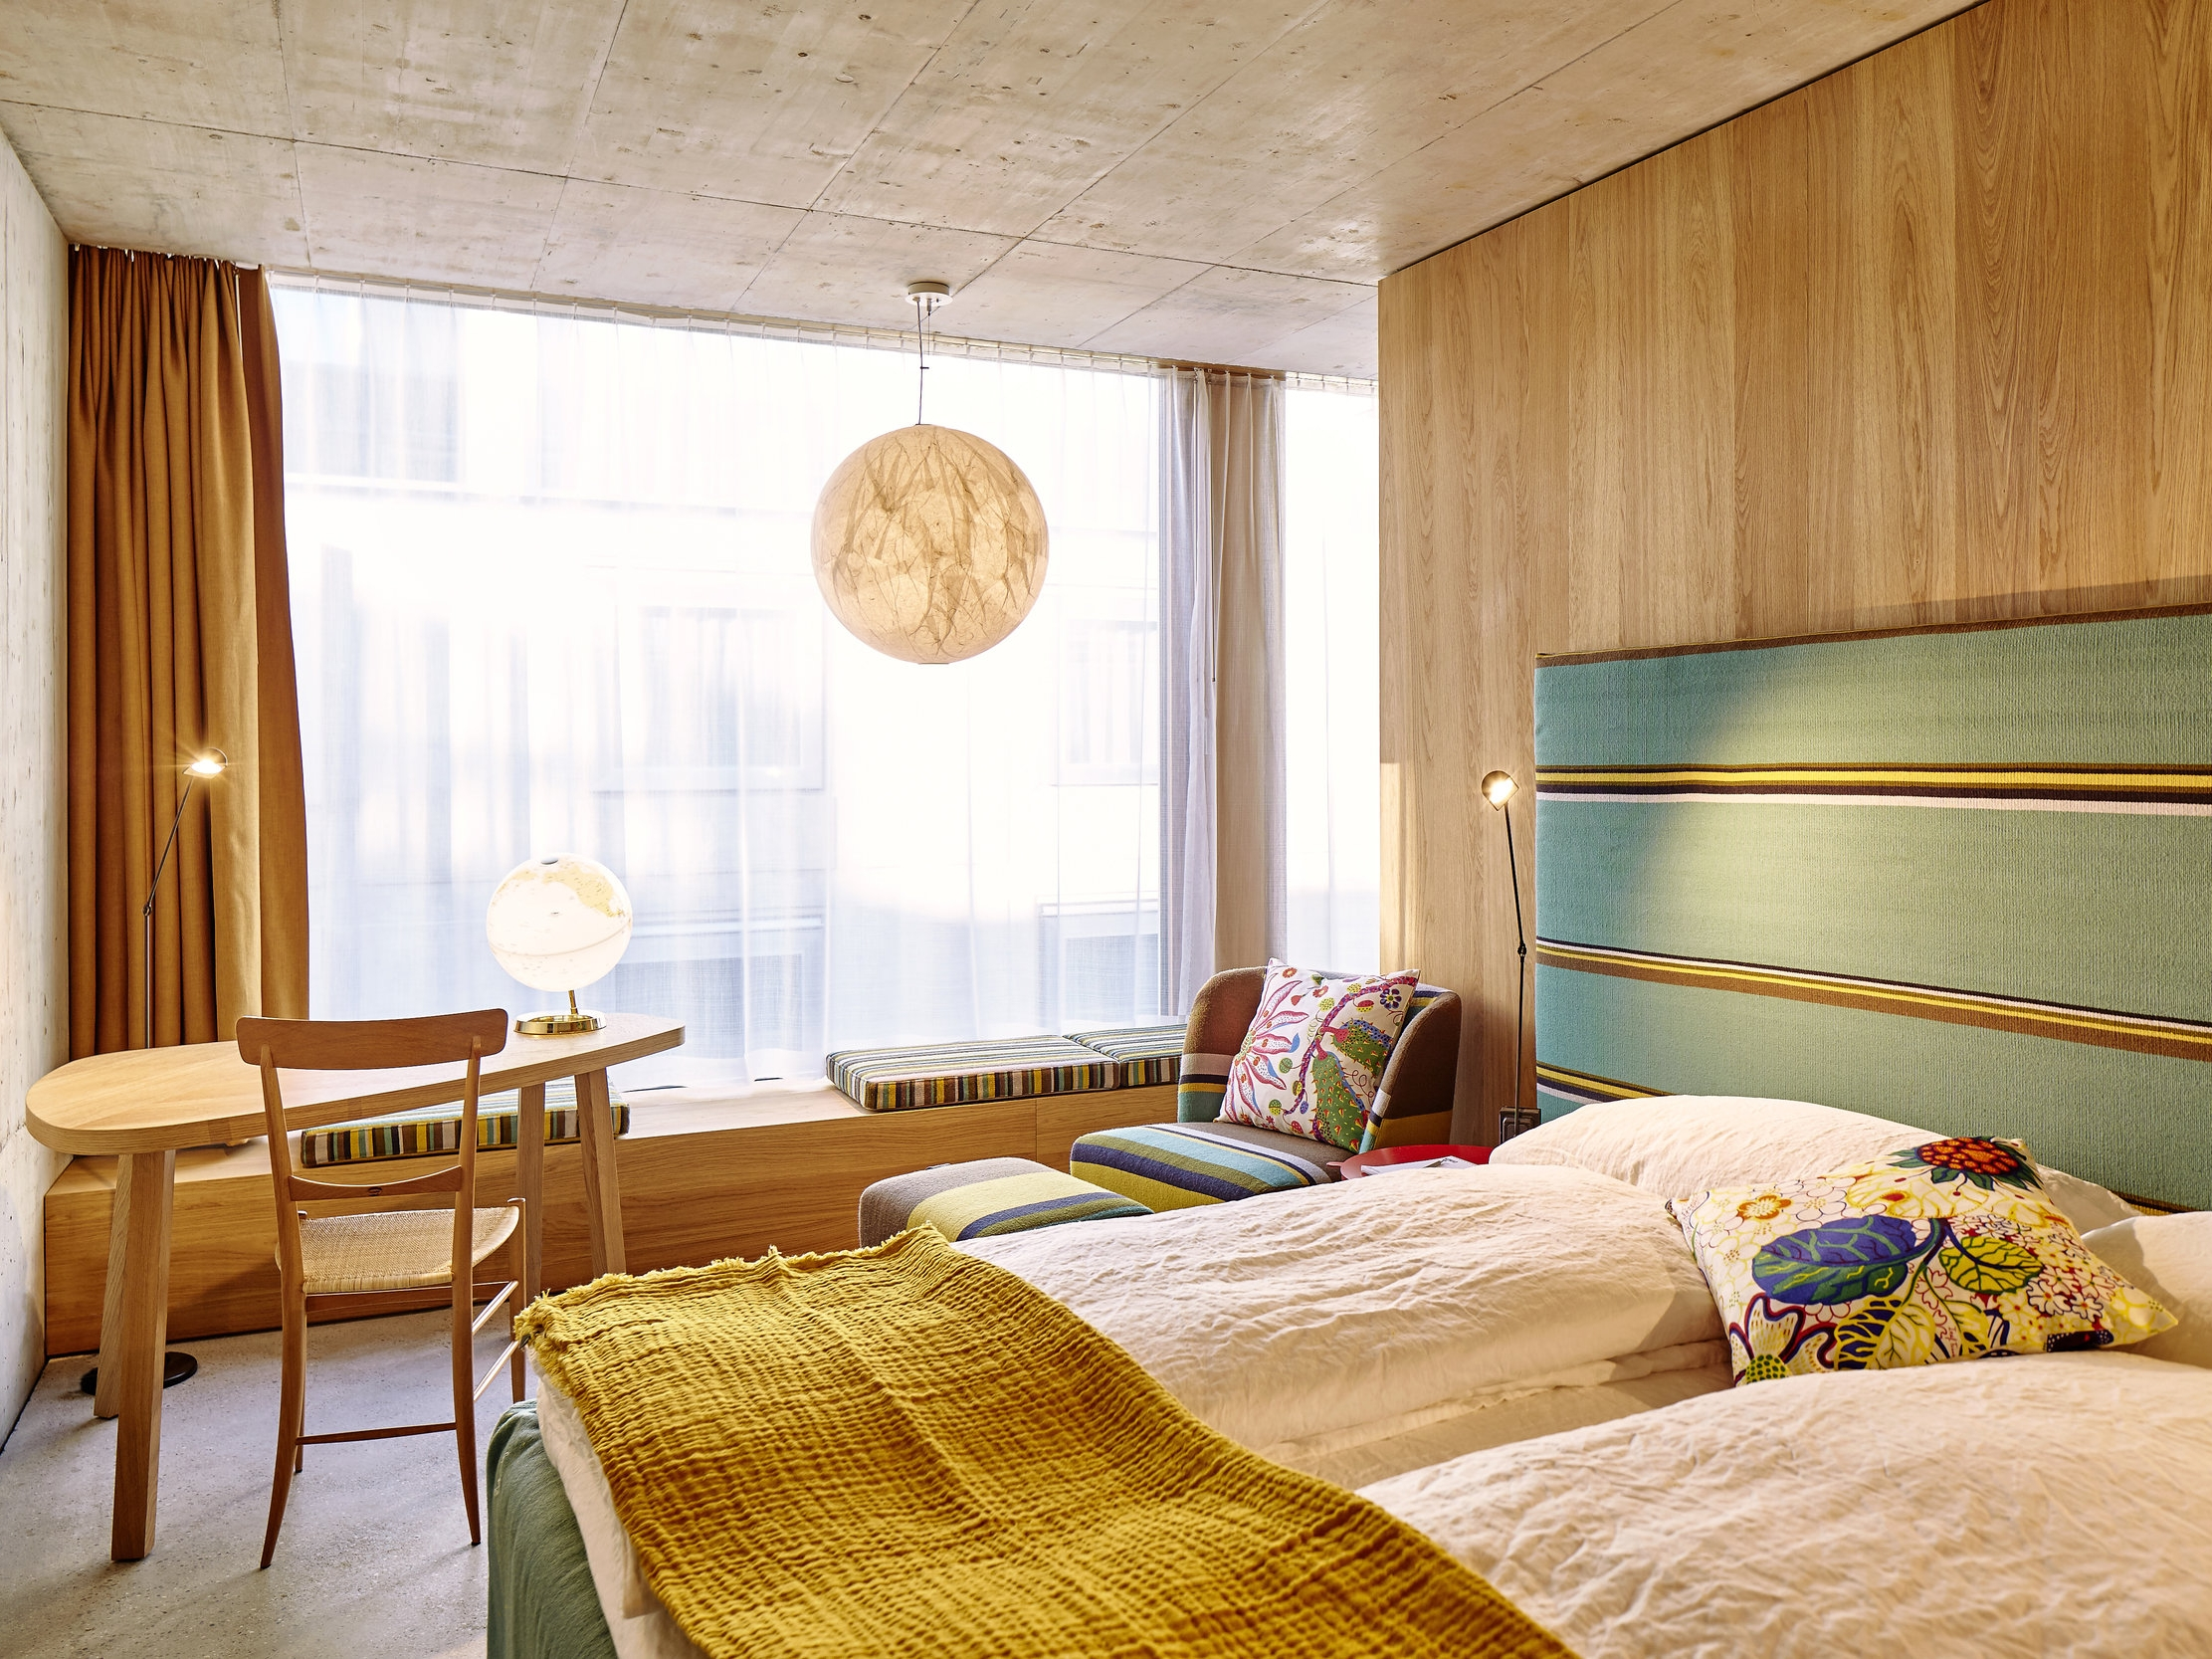 Urban club room, Hotel NOMAD, Basel